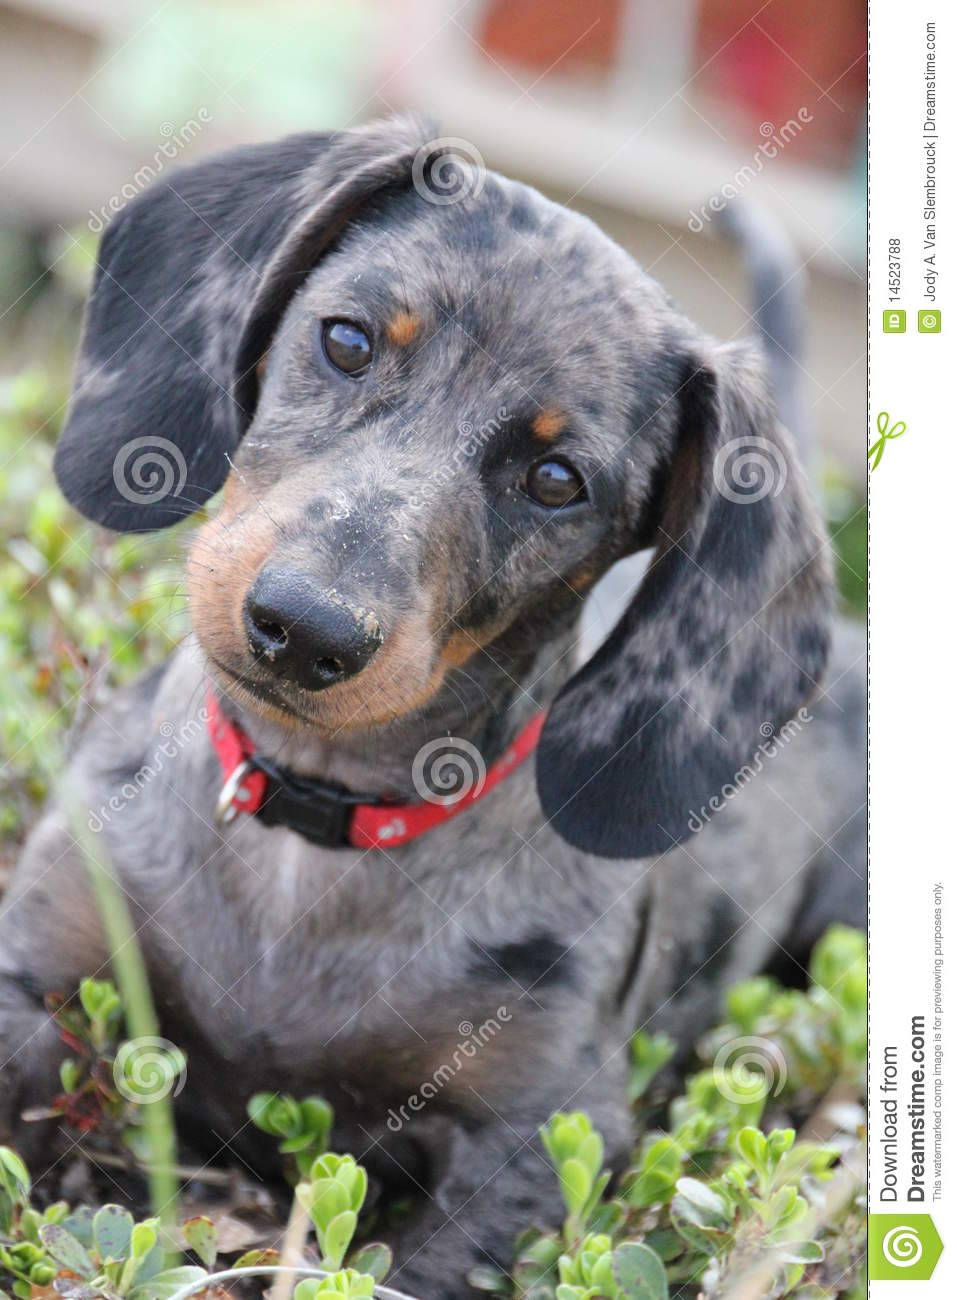 Dapple Dachshund Stock Photo Image Of Outdoors Curious 14523788